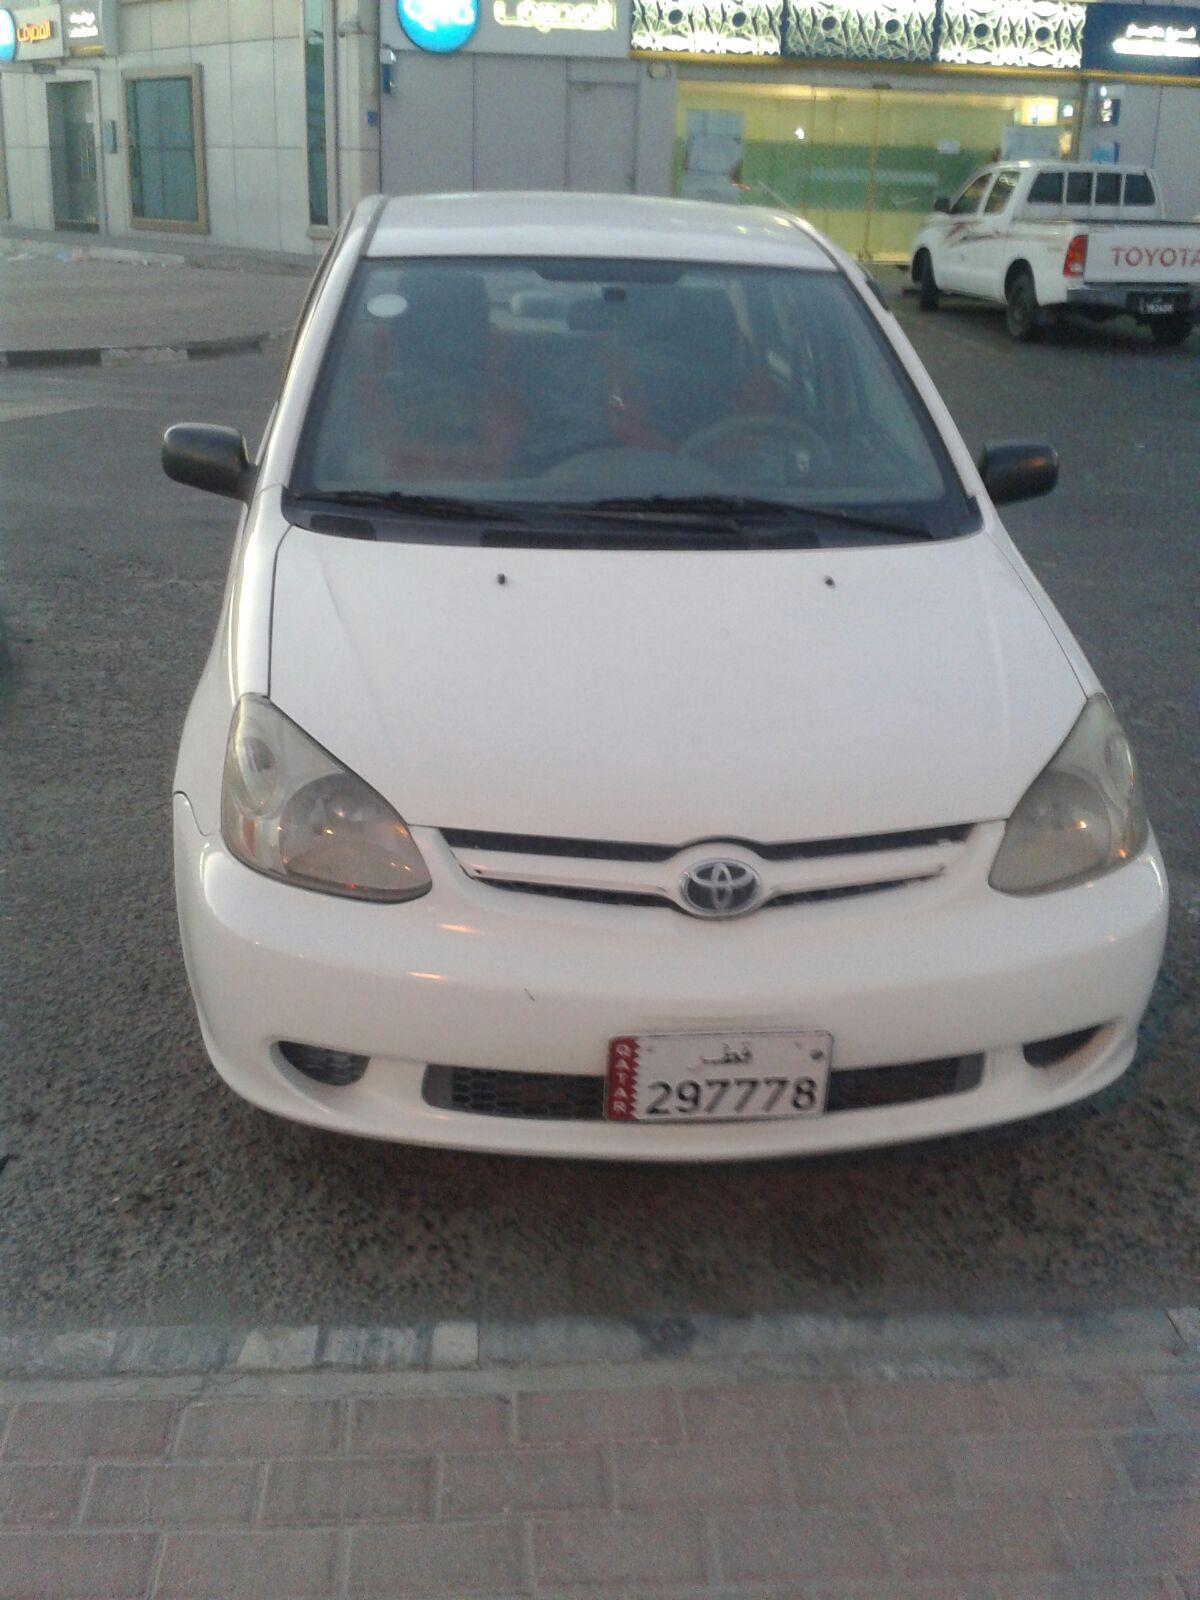 i have toyota echo car for sale 2003 model